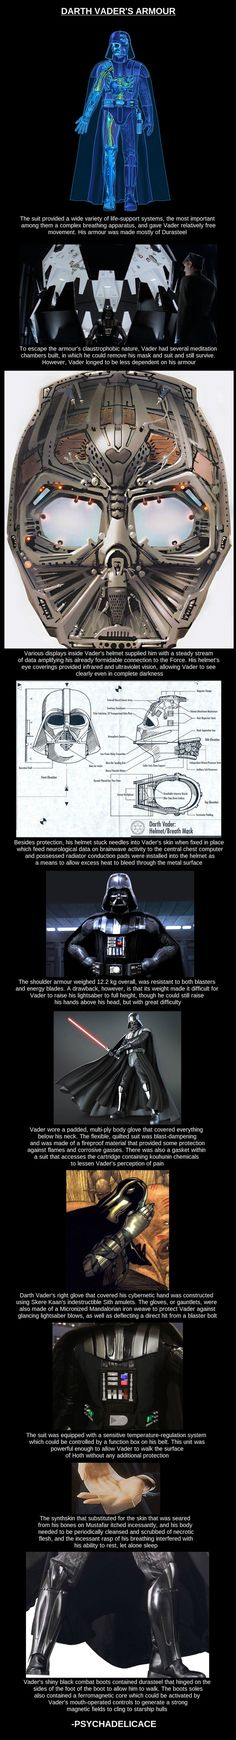 Infographic: The Technology in Darth Vader's Armor